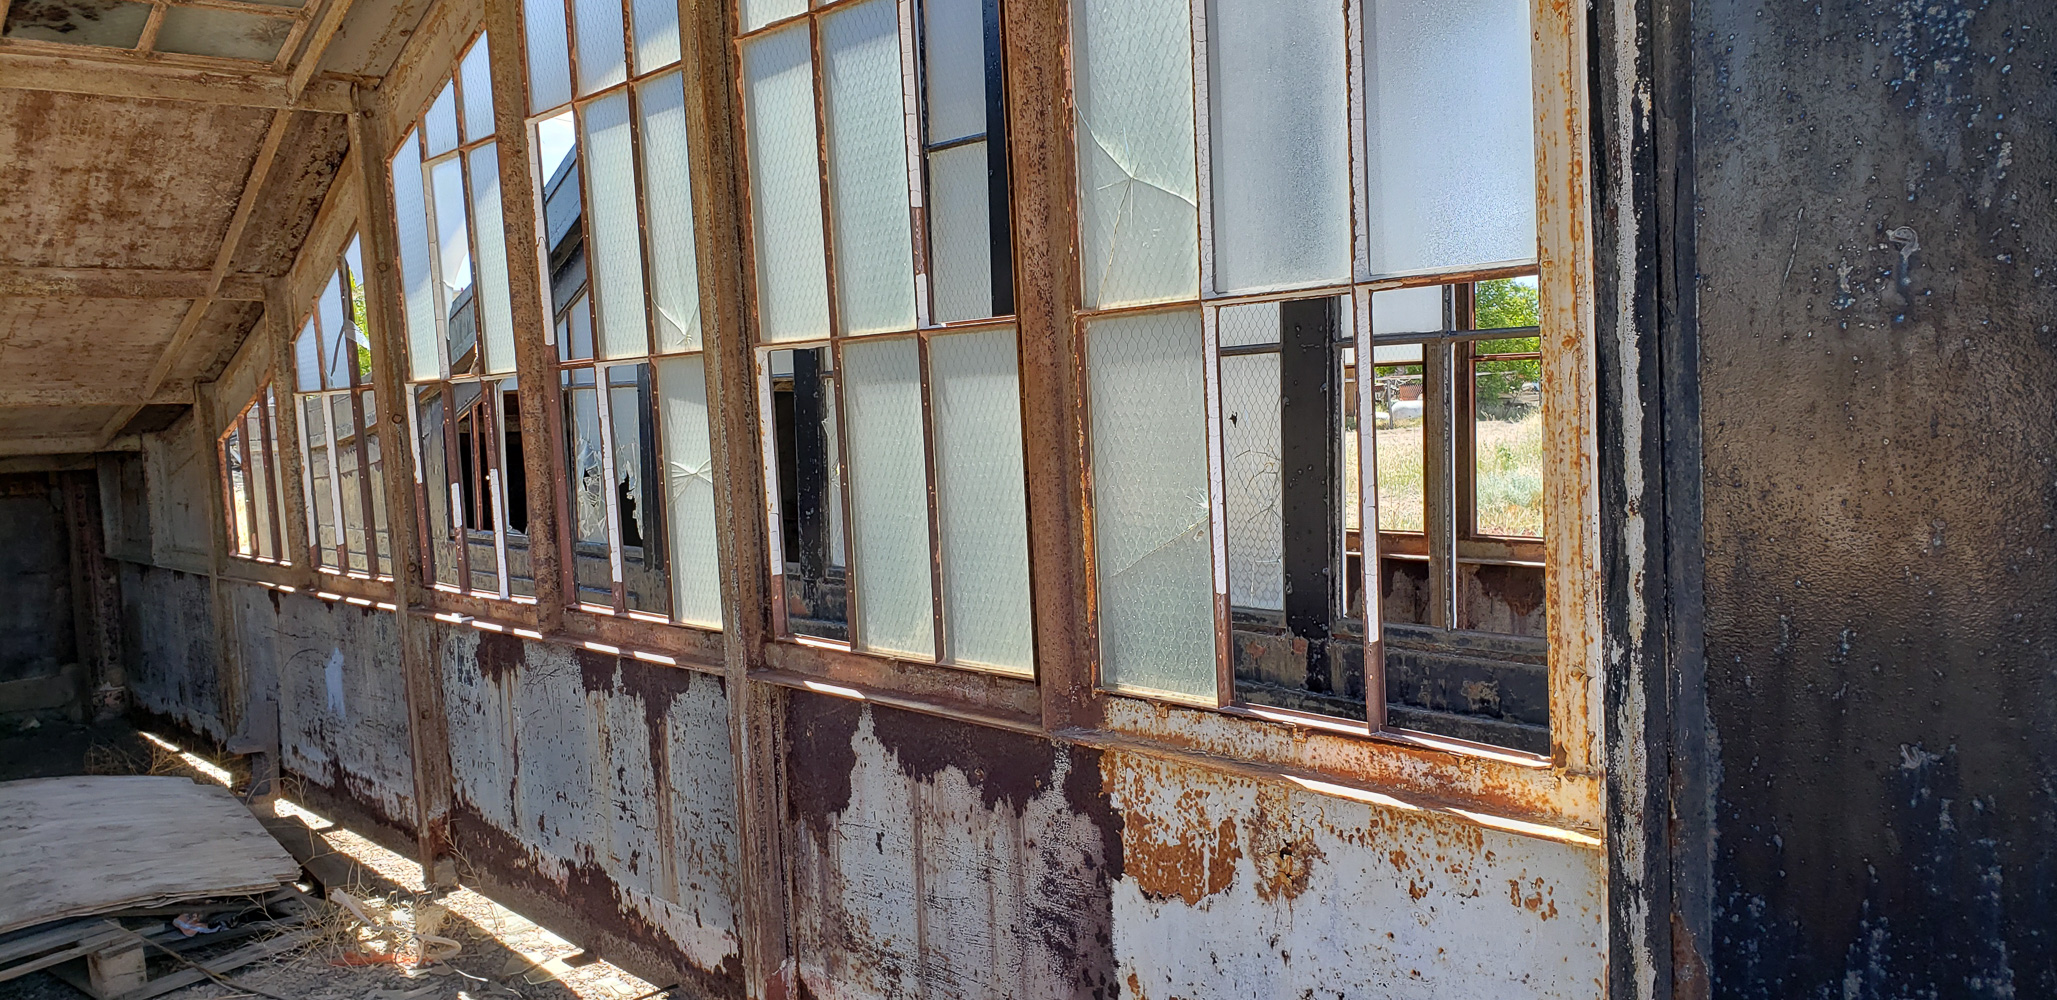 Goldfield Nevada subway entrance enclosures